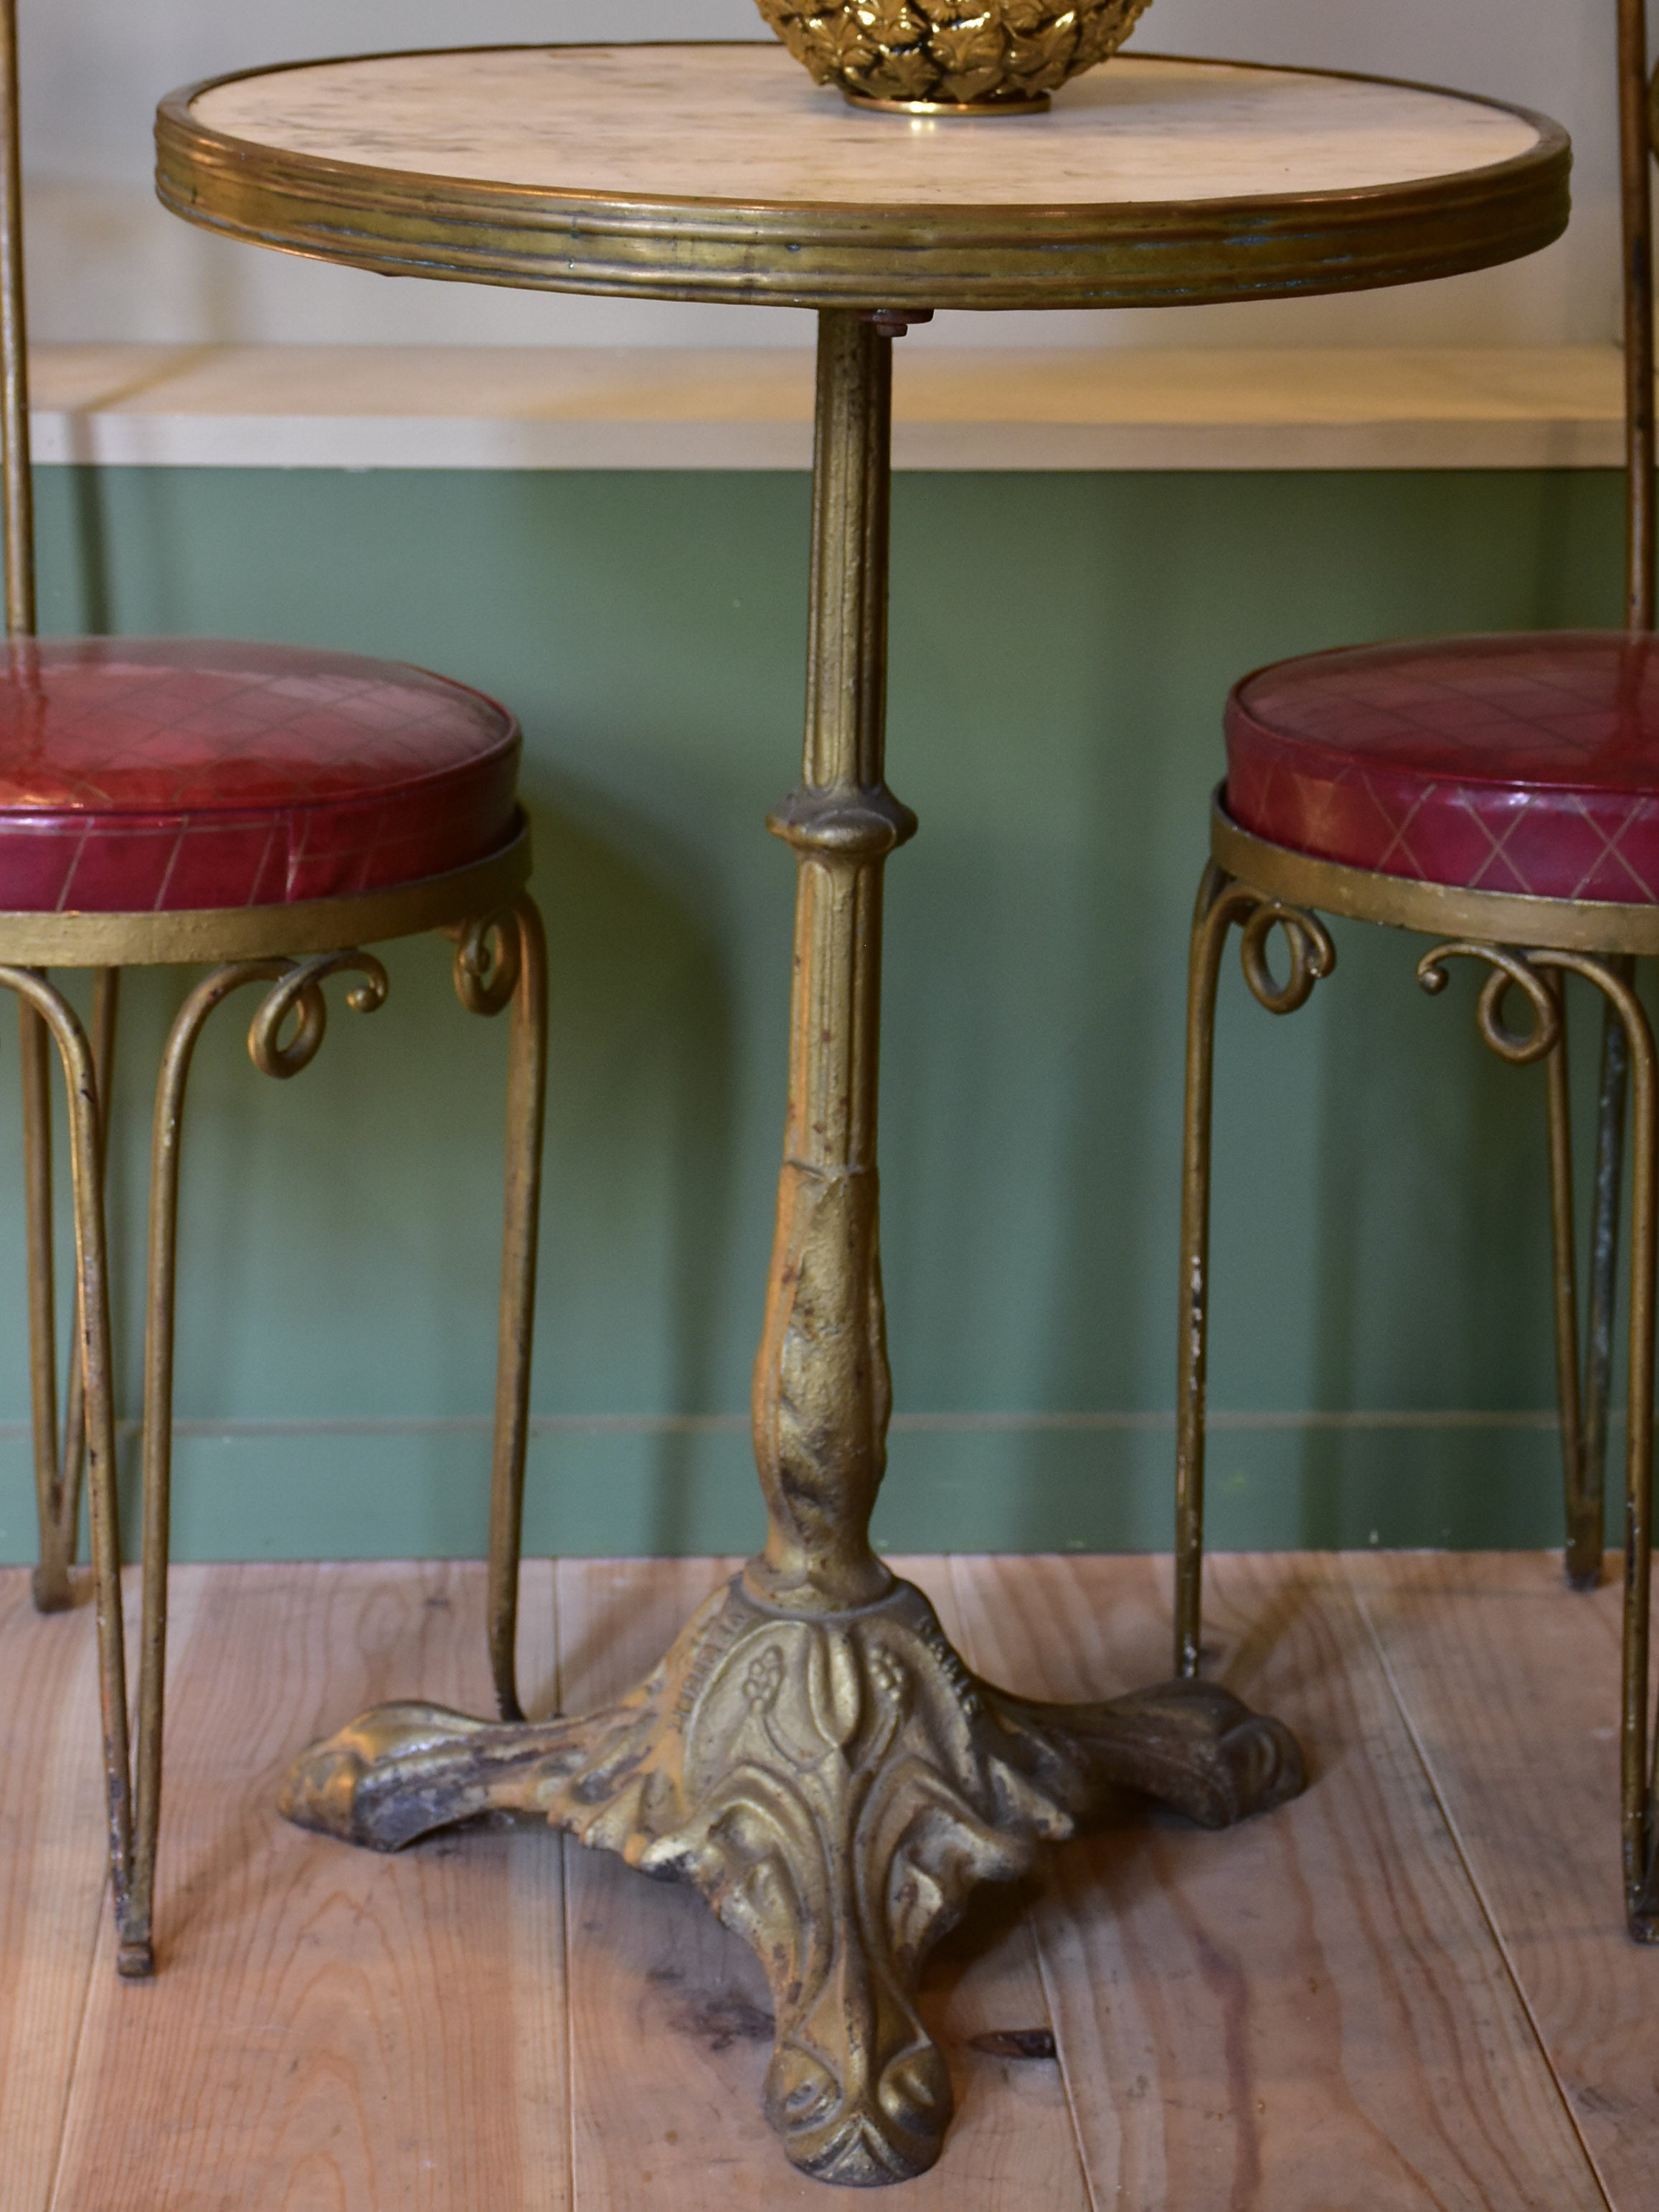 Marble top French garden table with gold base – 1930's